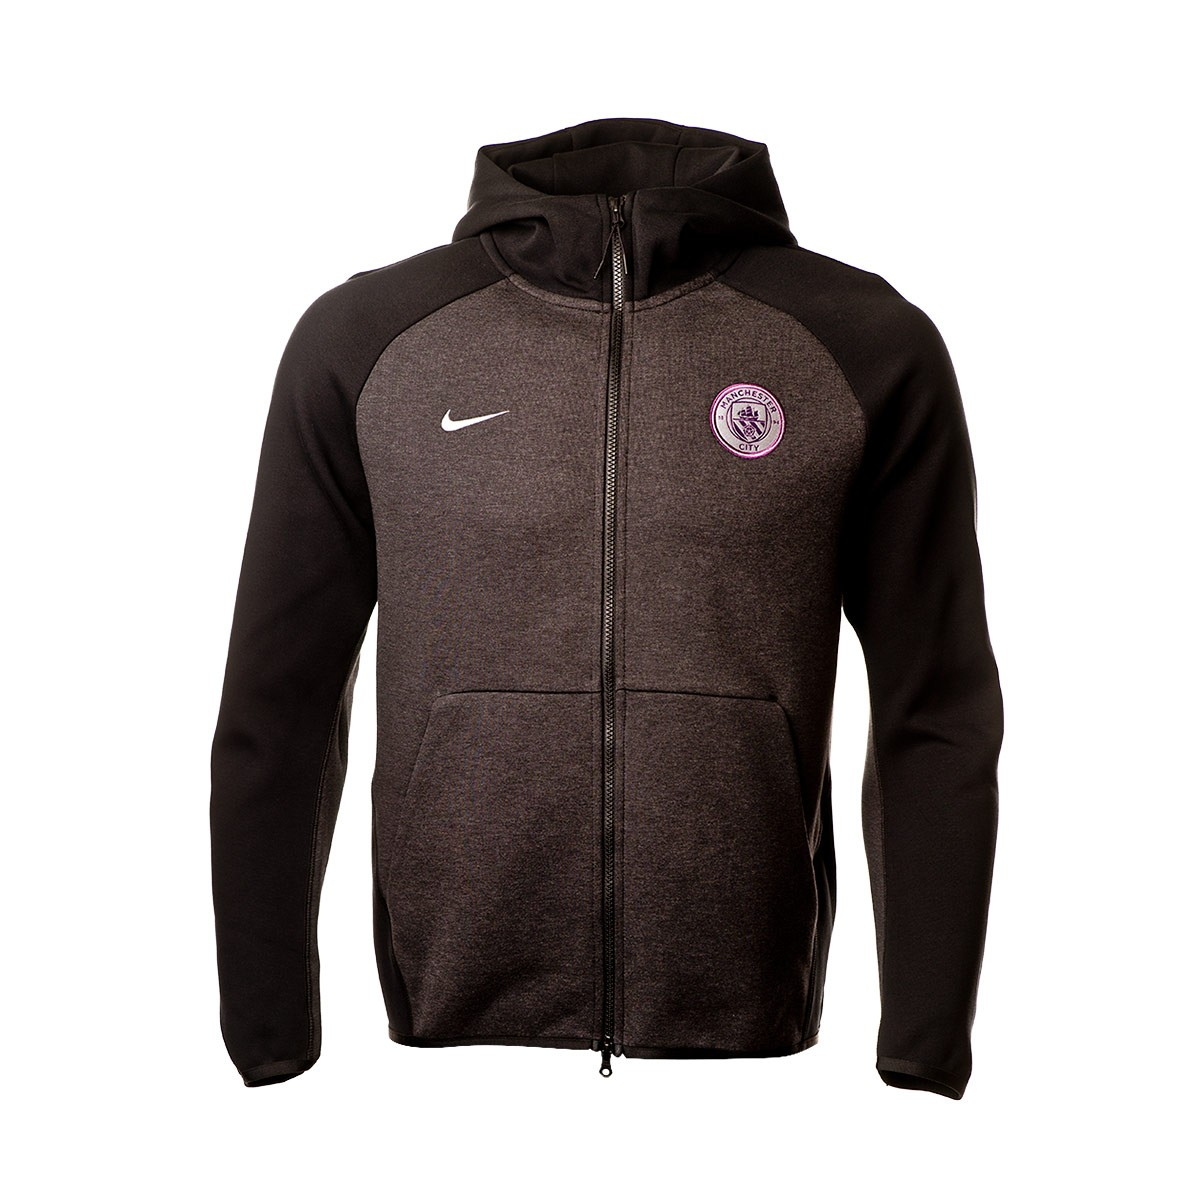 5b0250a51 Sweatshirt Nike Manchester City FC Tech Fleece 2018-2019 Black-Metallic  silver - Tienda de fútbol Fútbol Emotion